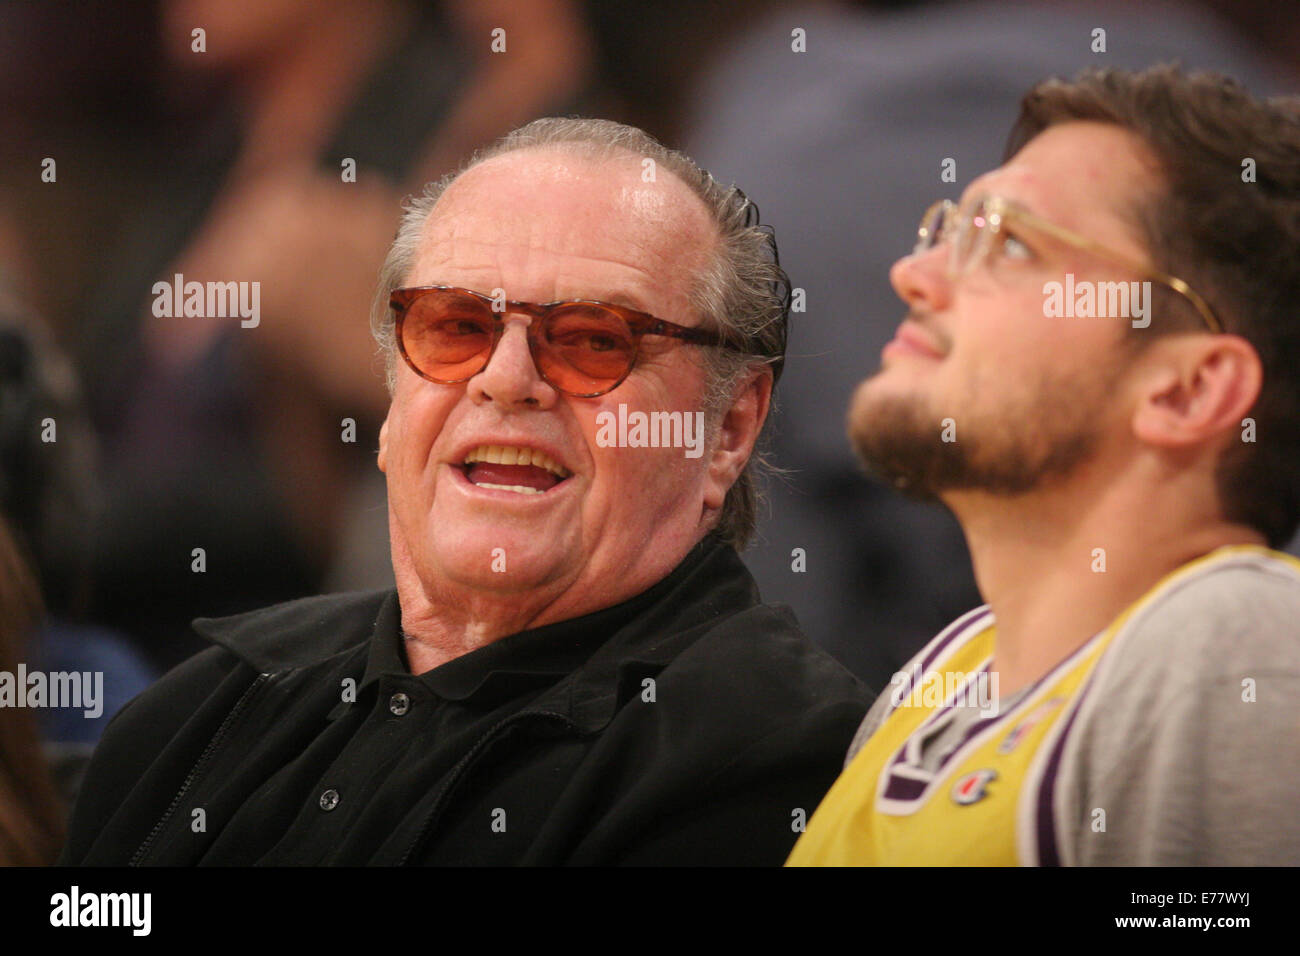 Jack Nicholson And Raymond Nicholson High Resolution Stock Photography And Images Alamy Lakers home game debut at staples center. https www alamy com stock photo celebrities courtside at the los angeles lakers v los angeles clippers 73318102 html